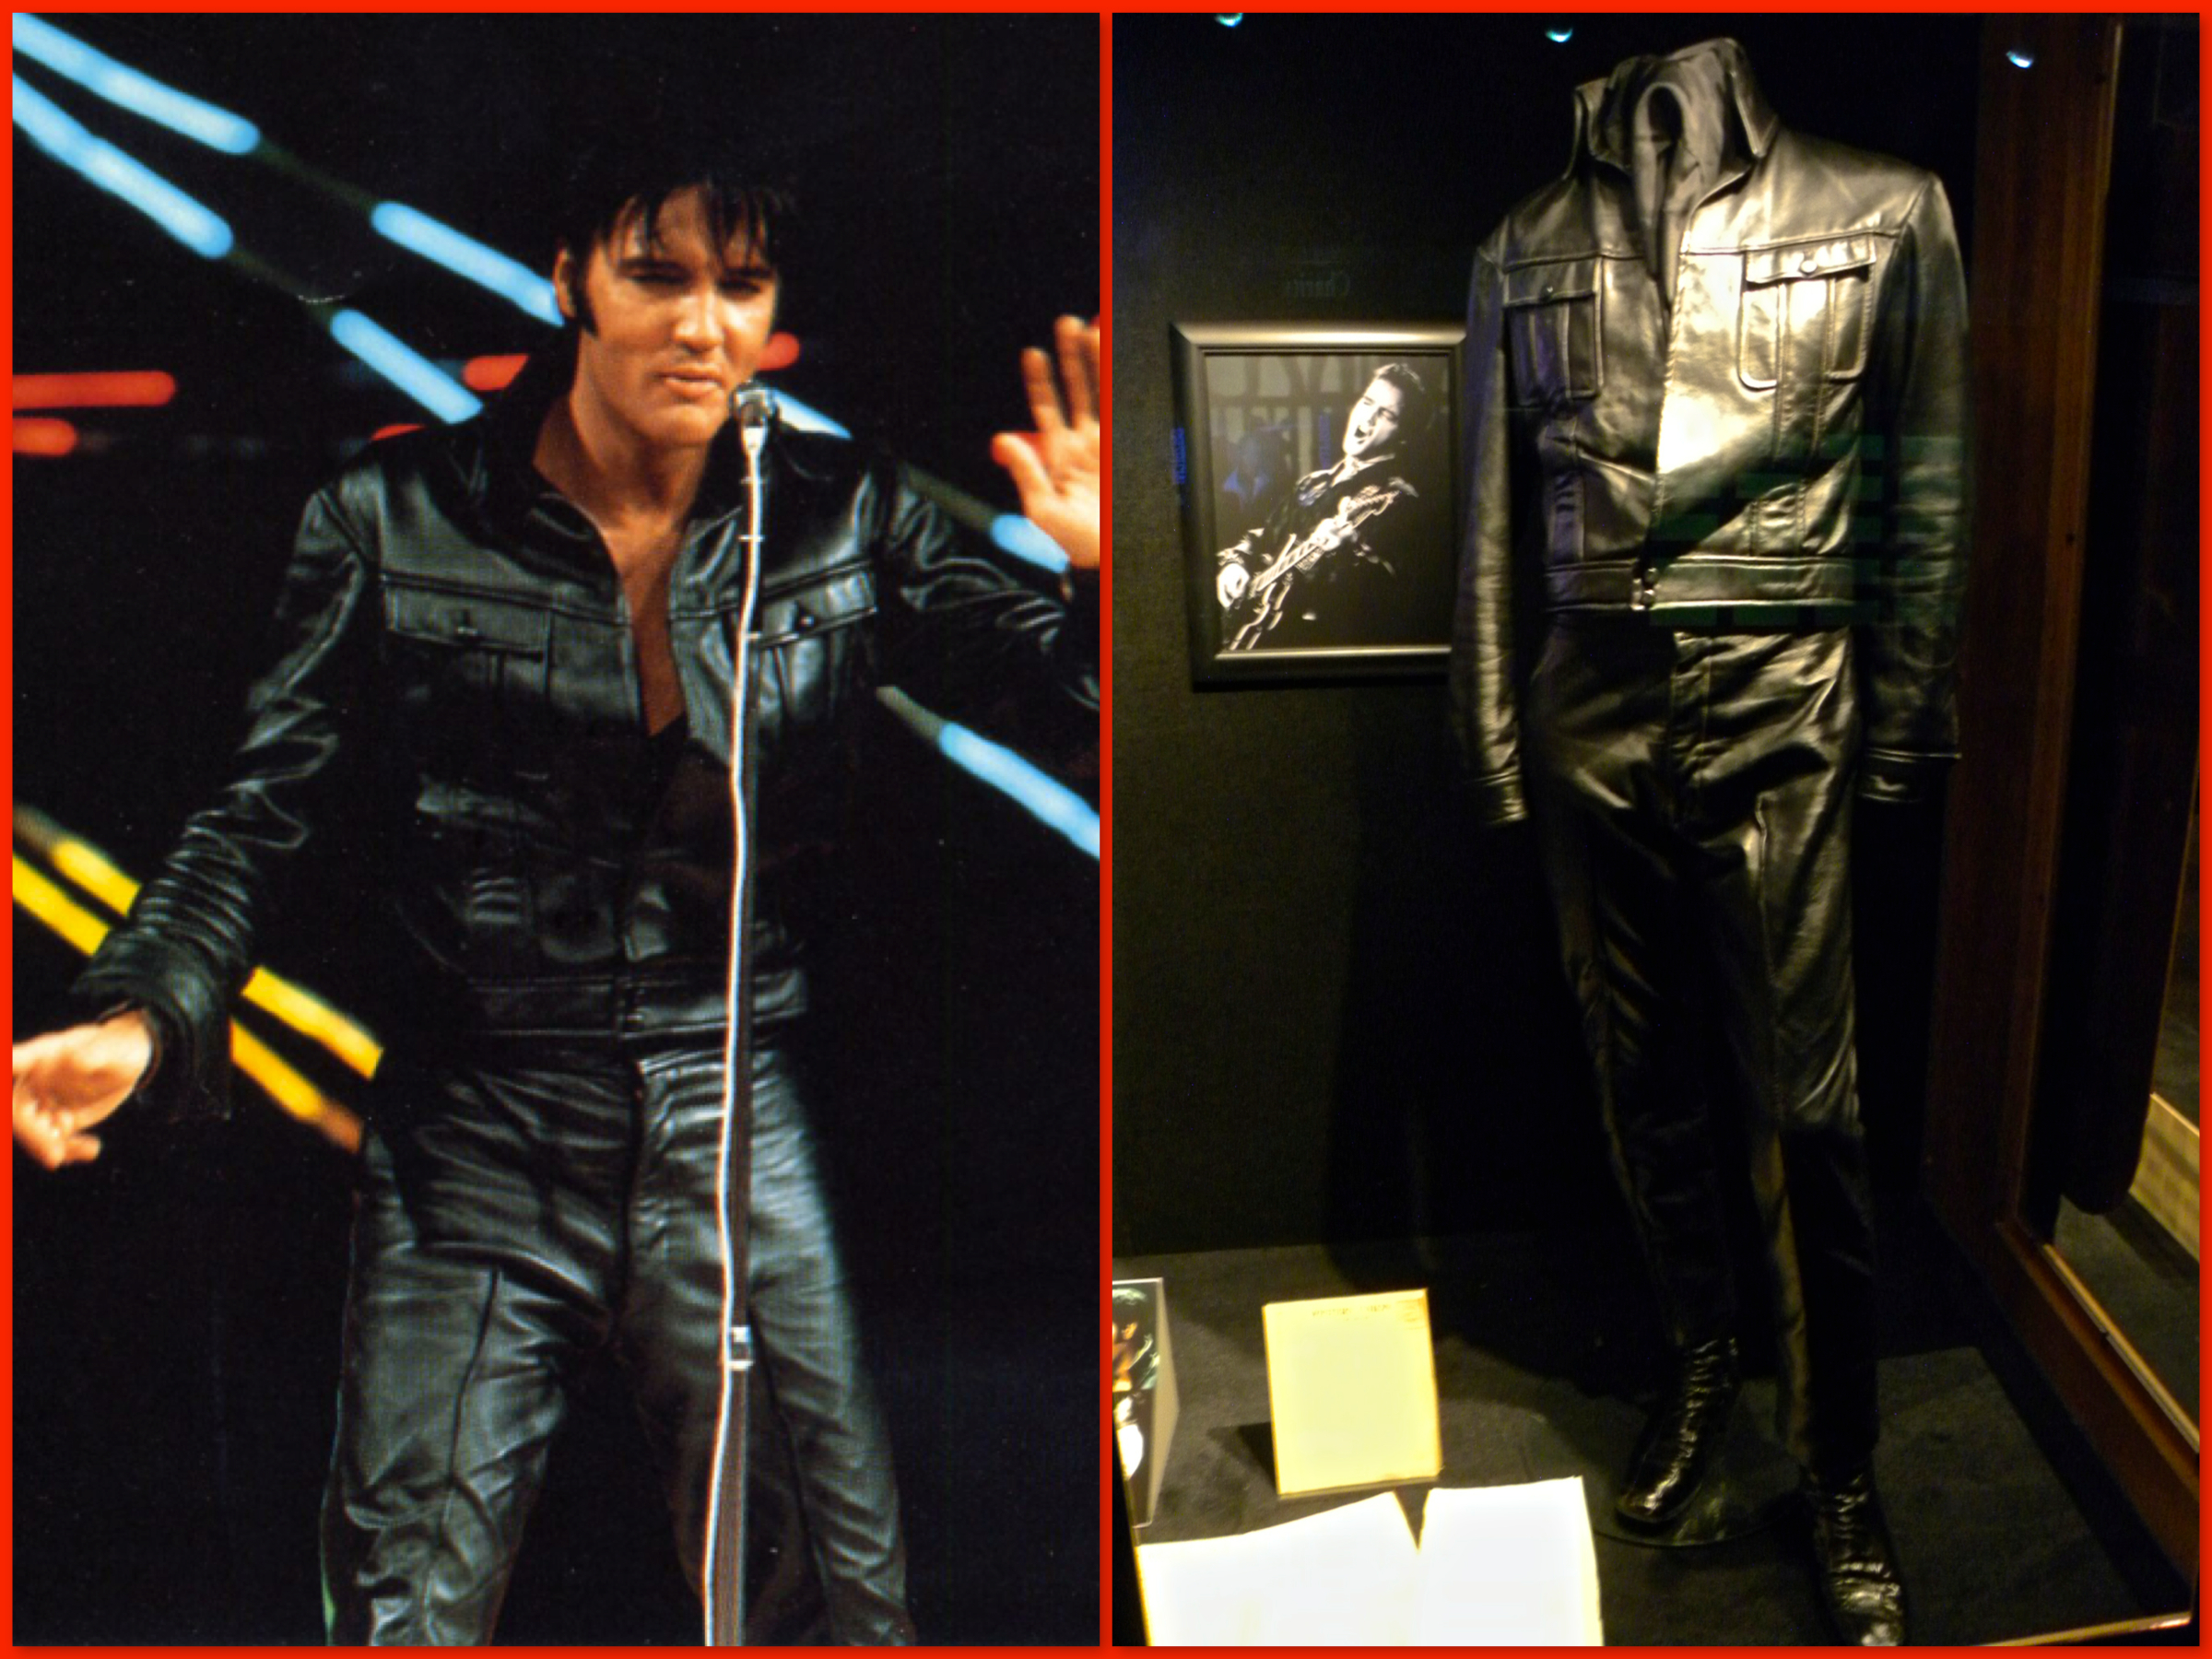 elvis concert with orchestra  sc 1 st  WeekendNotes & The Wonder Of You Australian Arena Tour 2017